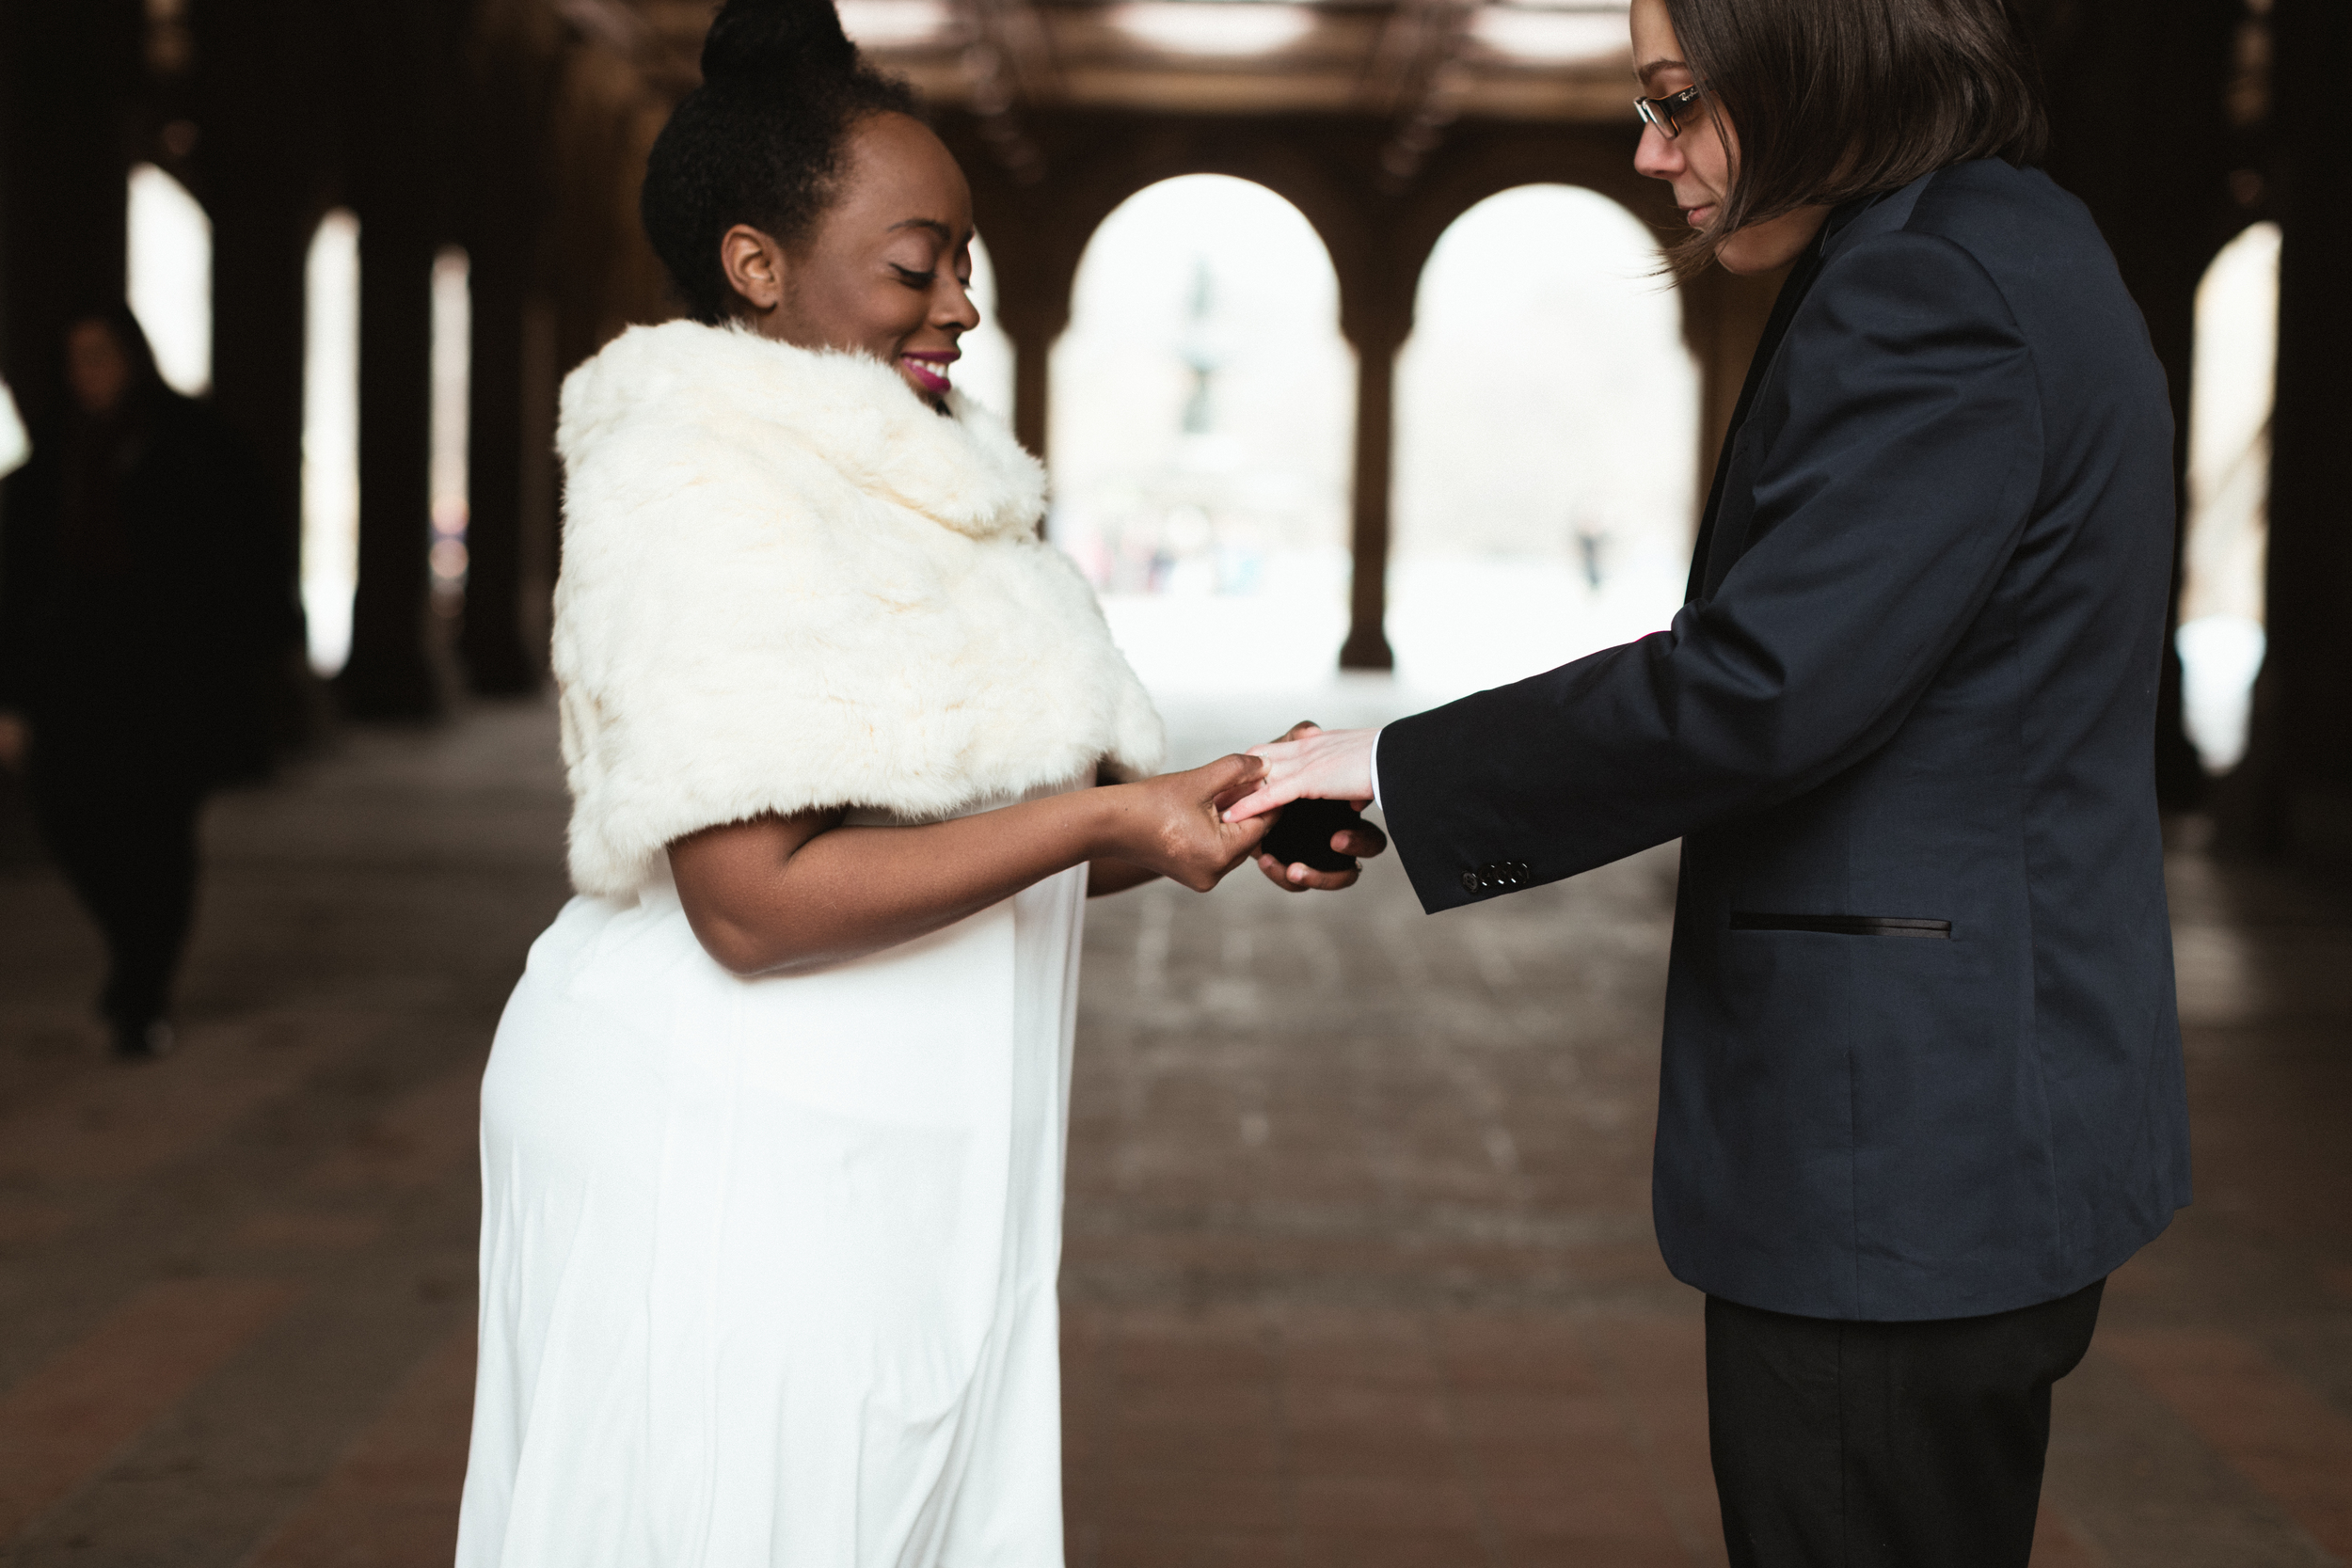 Ash Carr Wedding Photography New York exchanging rings